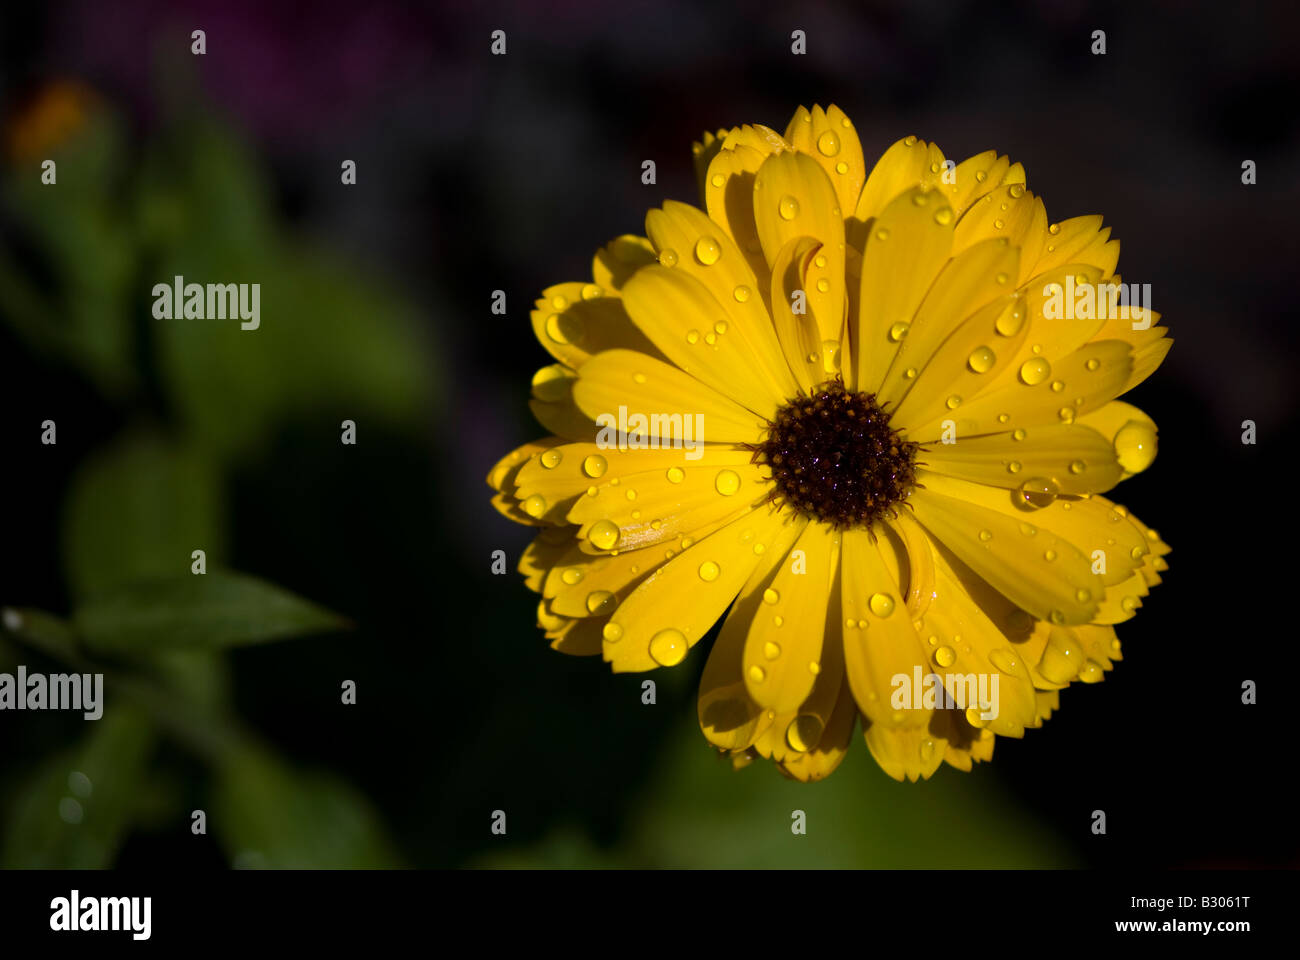 Bright gold mum with water droplets. - Stock Image